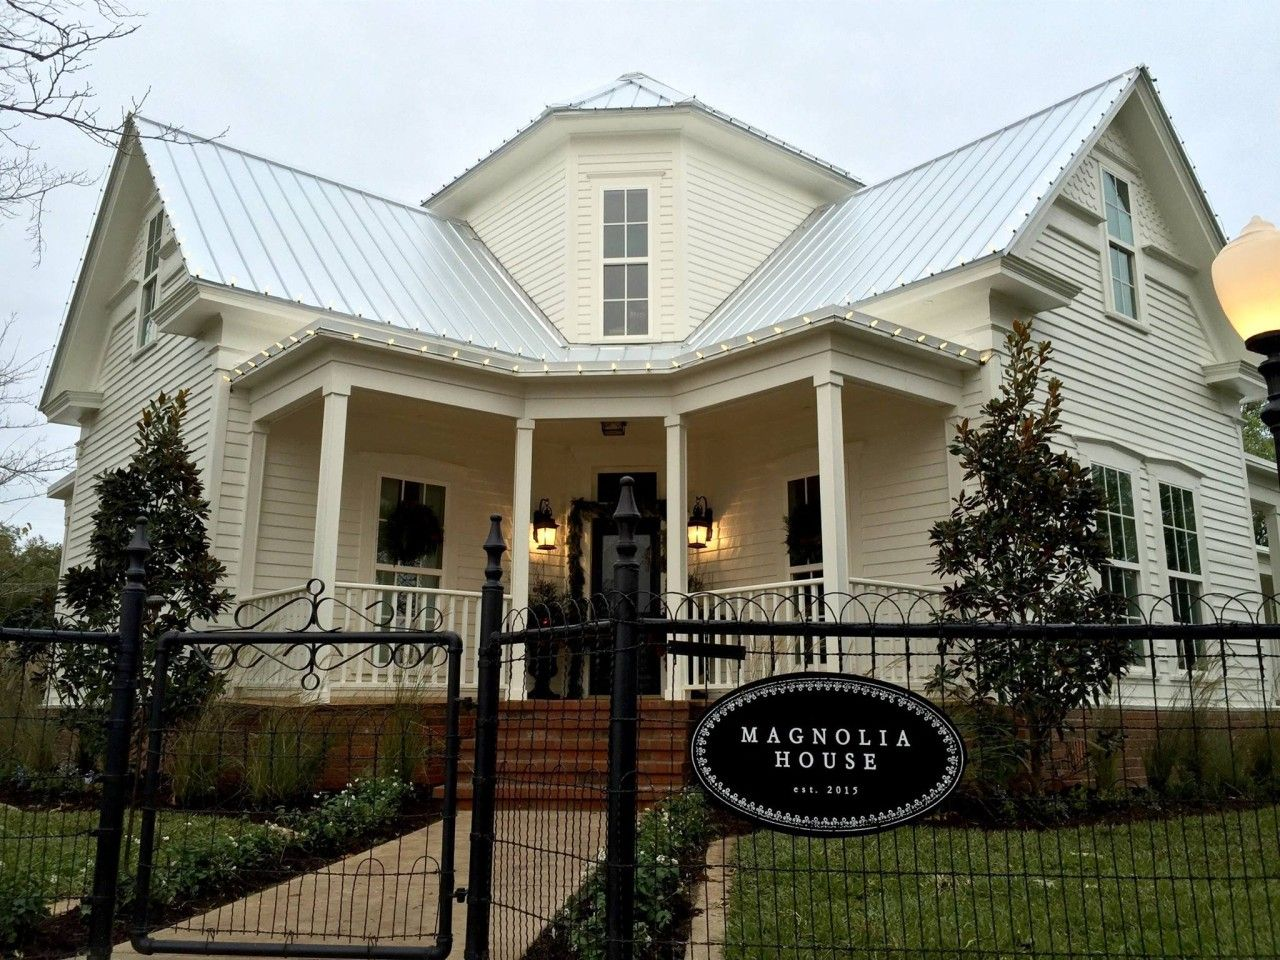 magnolia house 323 s madison ave mcgregor tx 76657